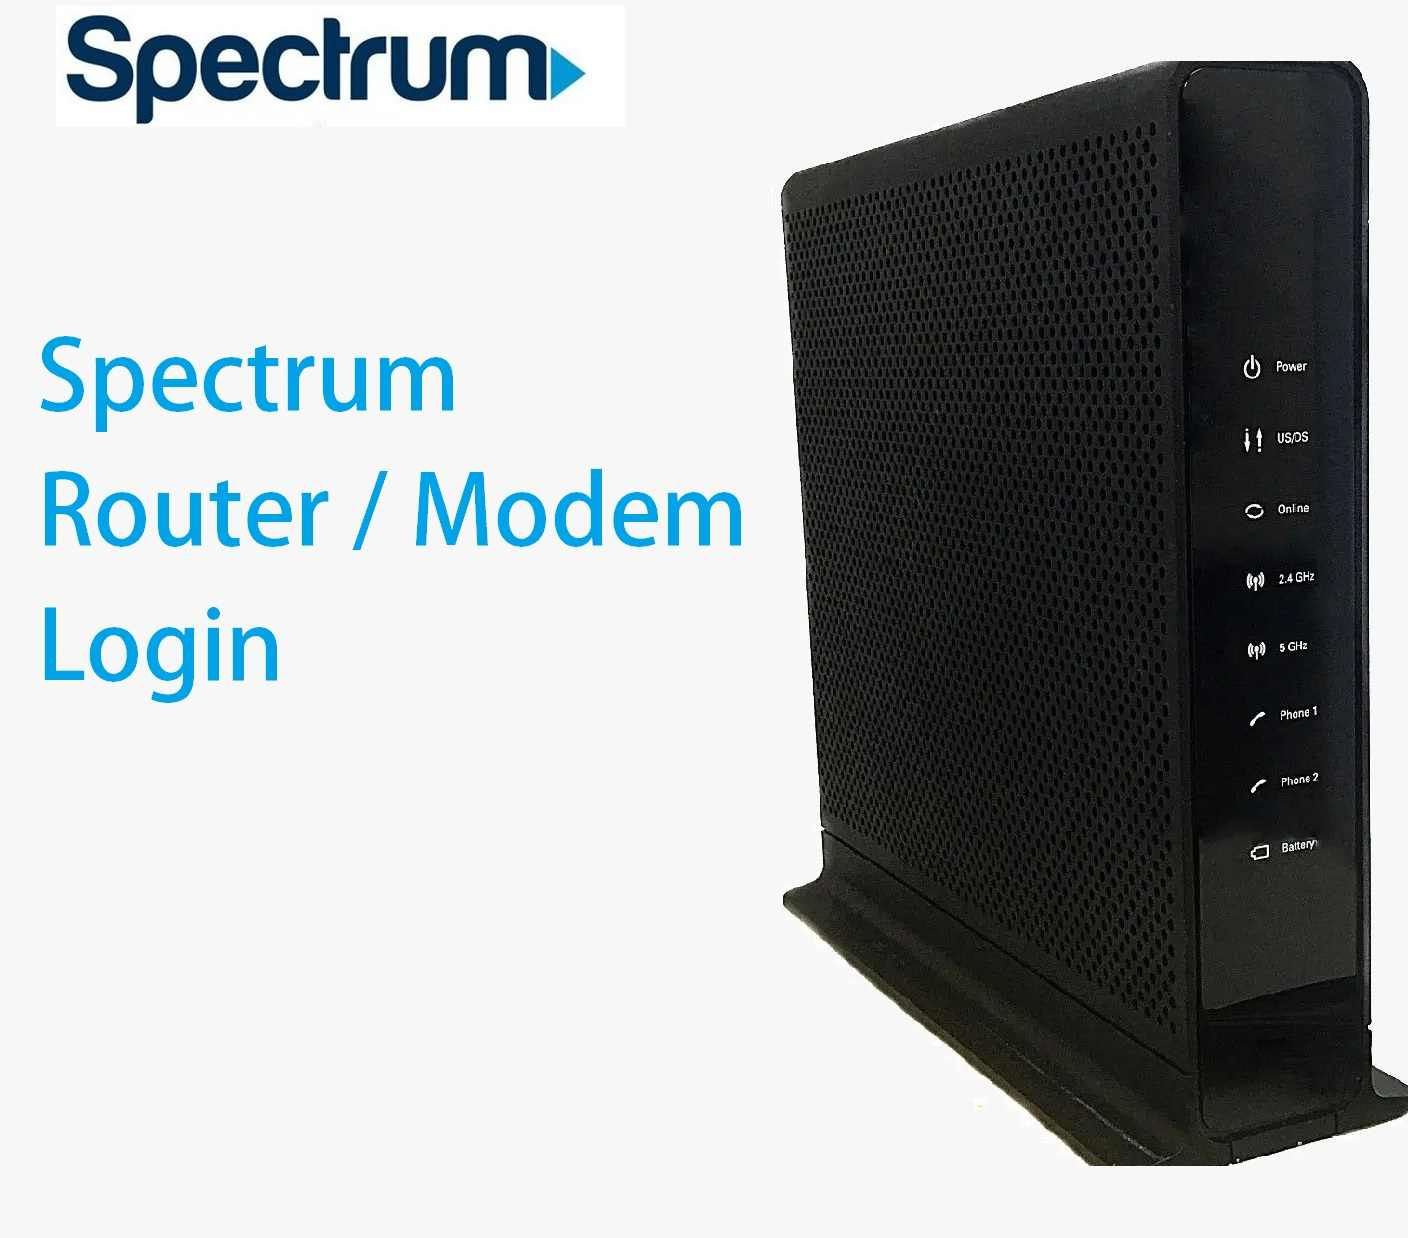 How to Log In to a Charter Spectrum Router